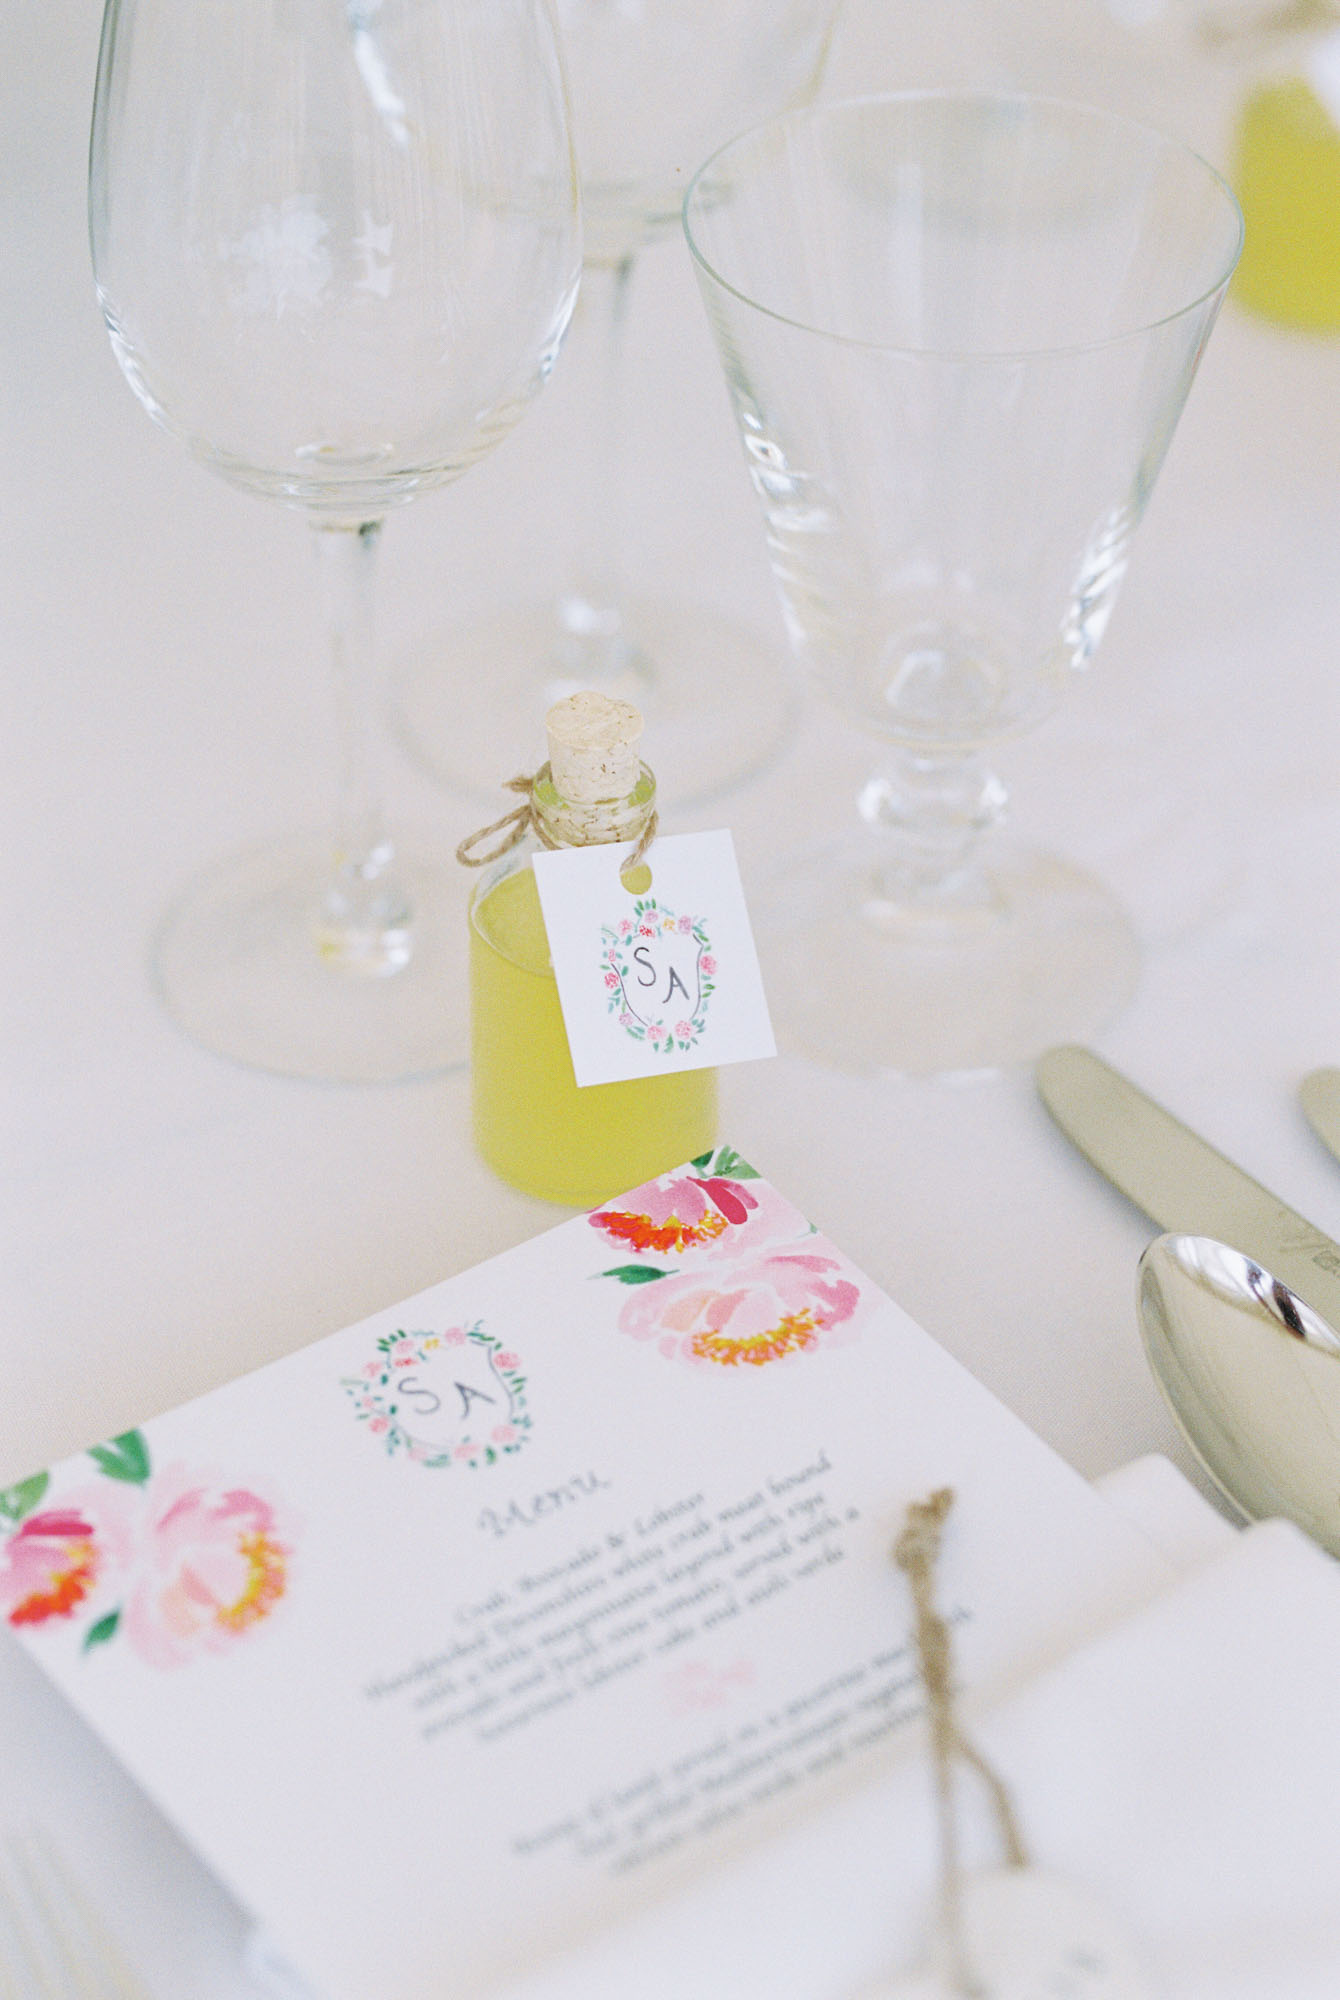 Limoncello wedding favours and menu on table at Stansted House